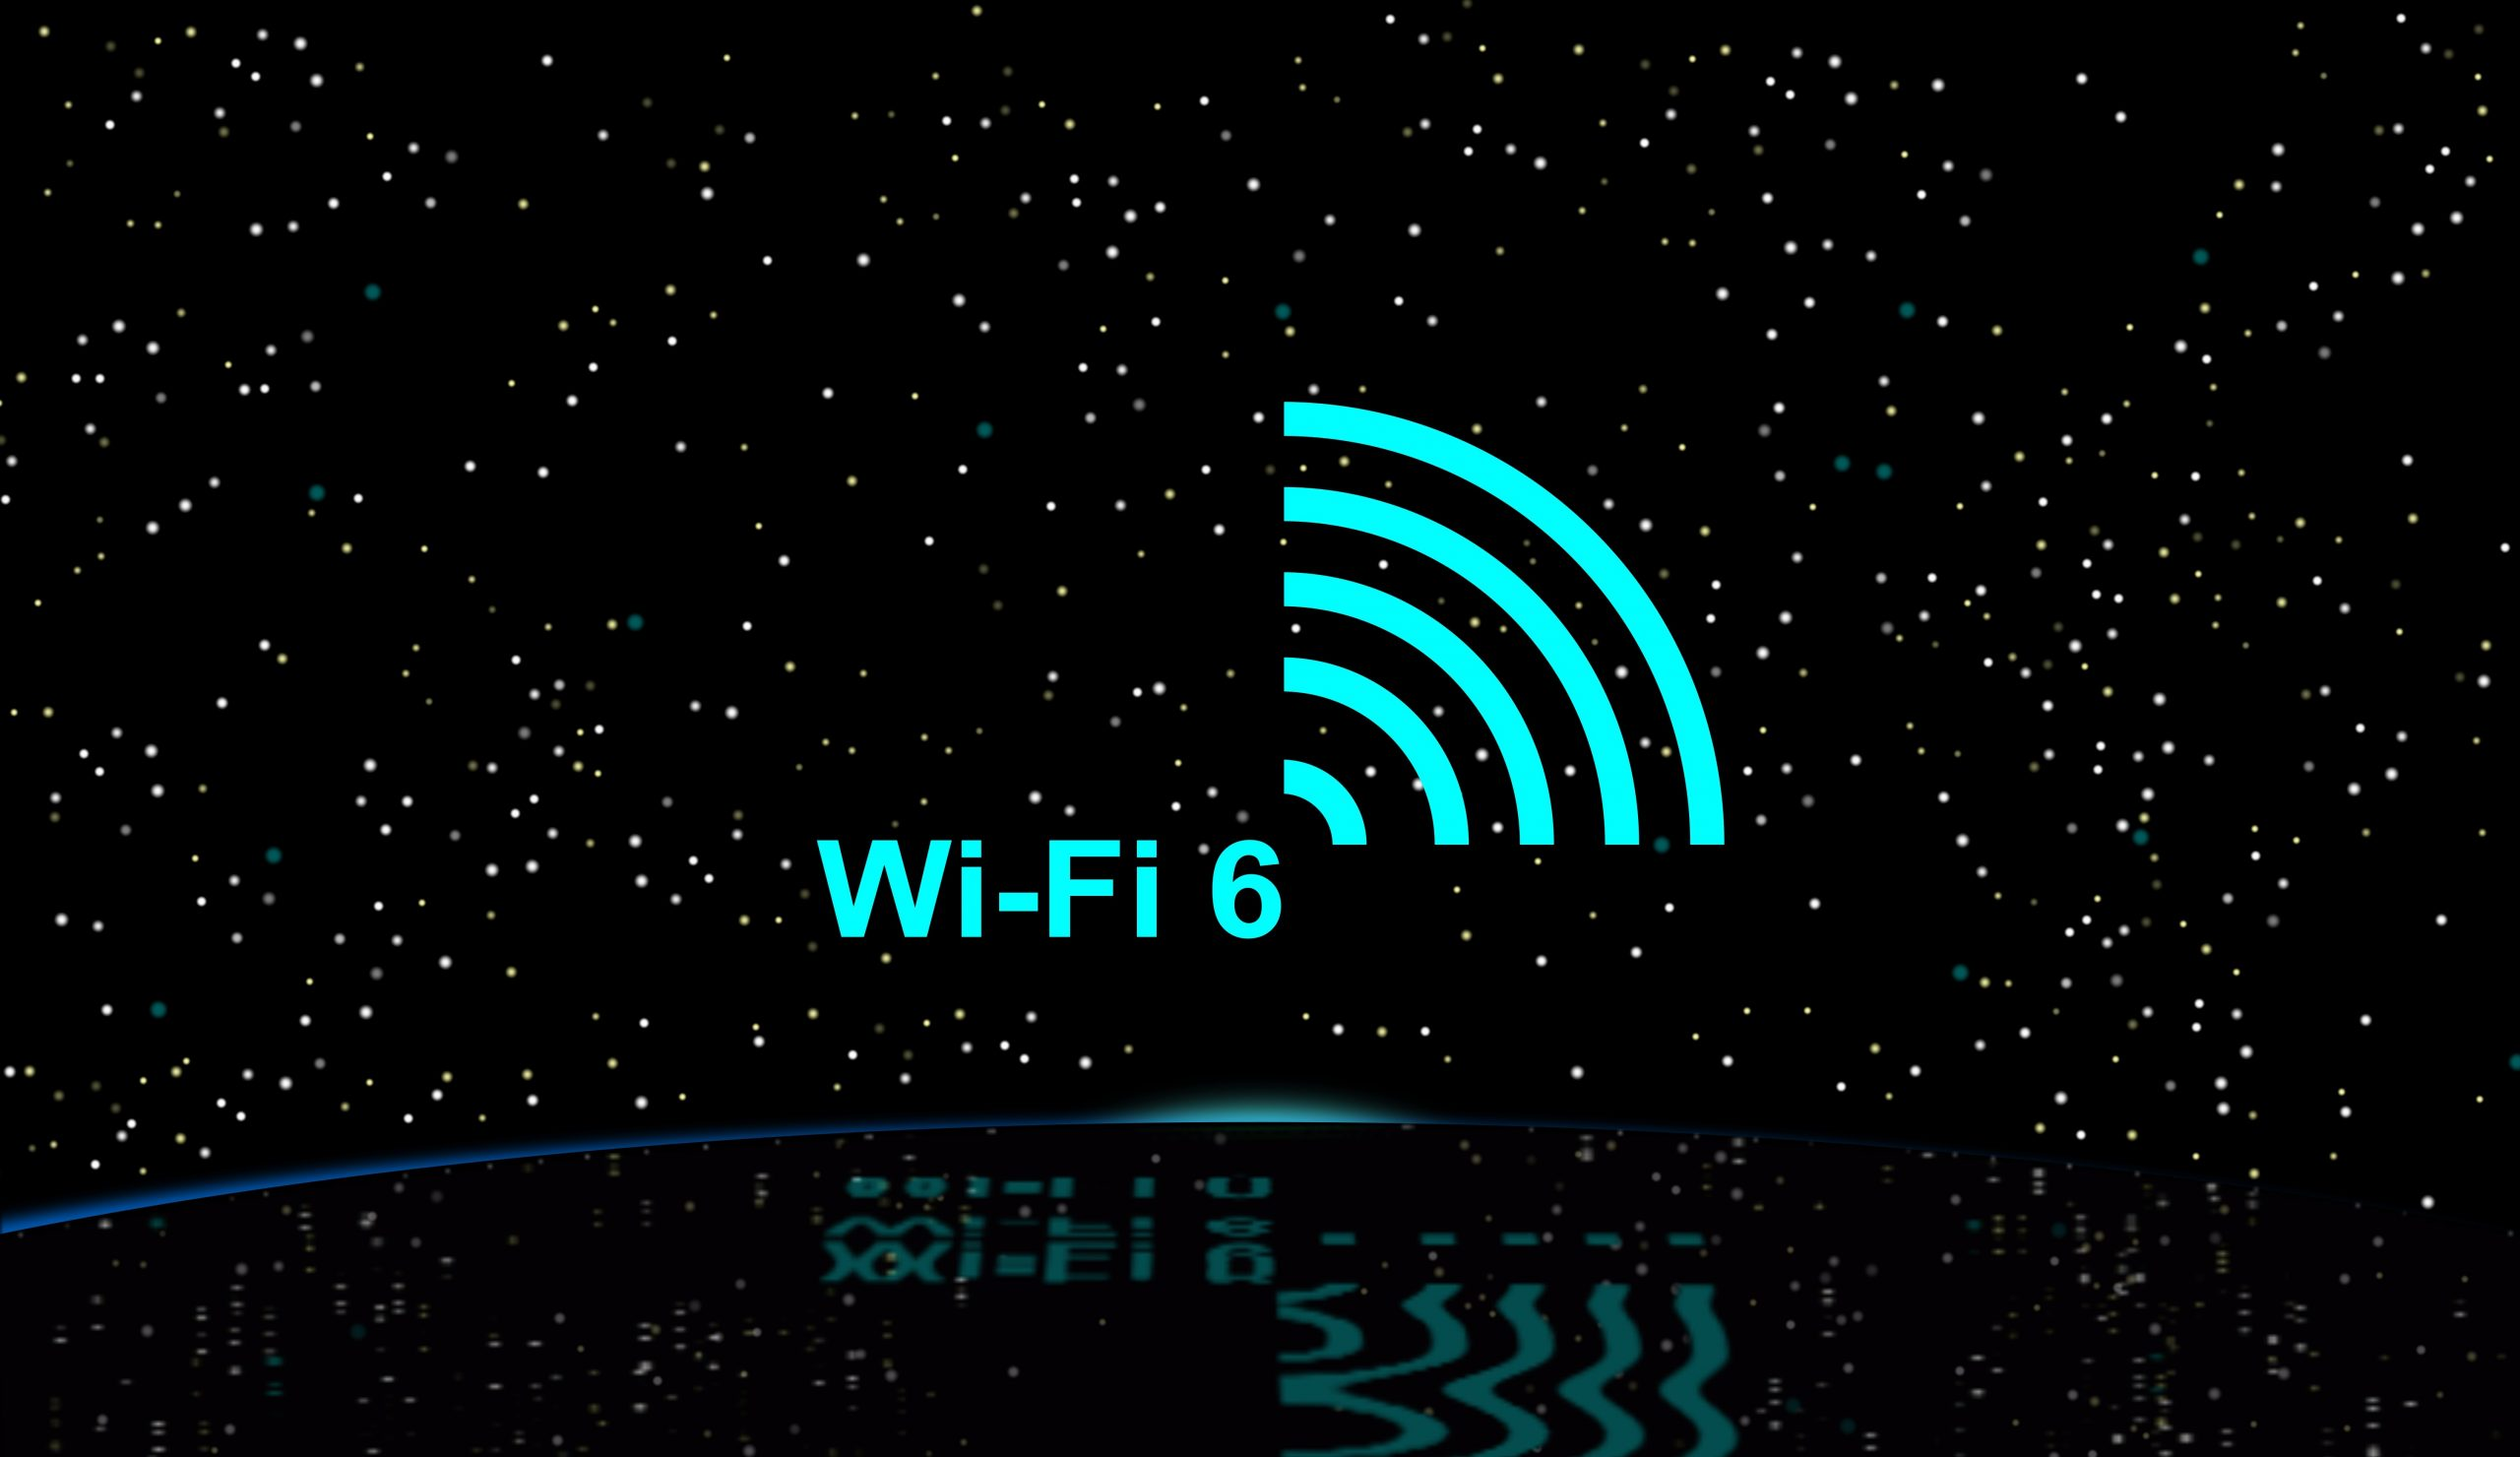 Wi-Fi 6: What It Means for the Convention Industry